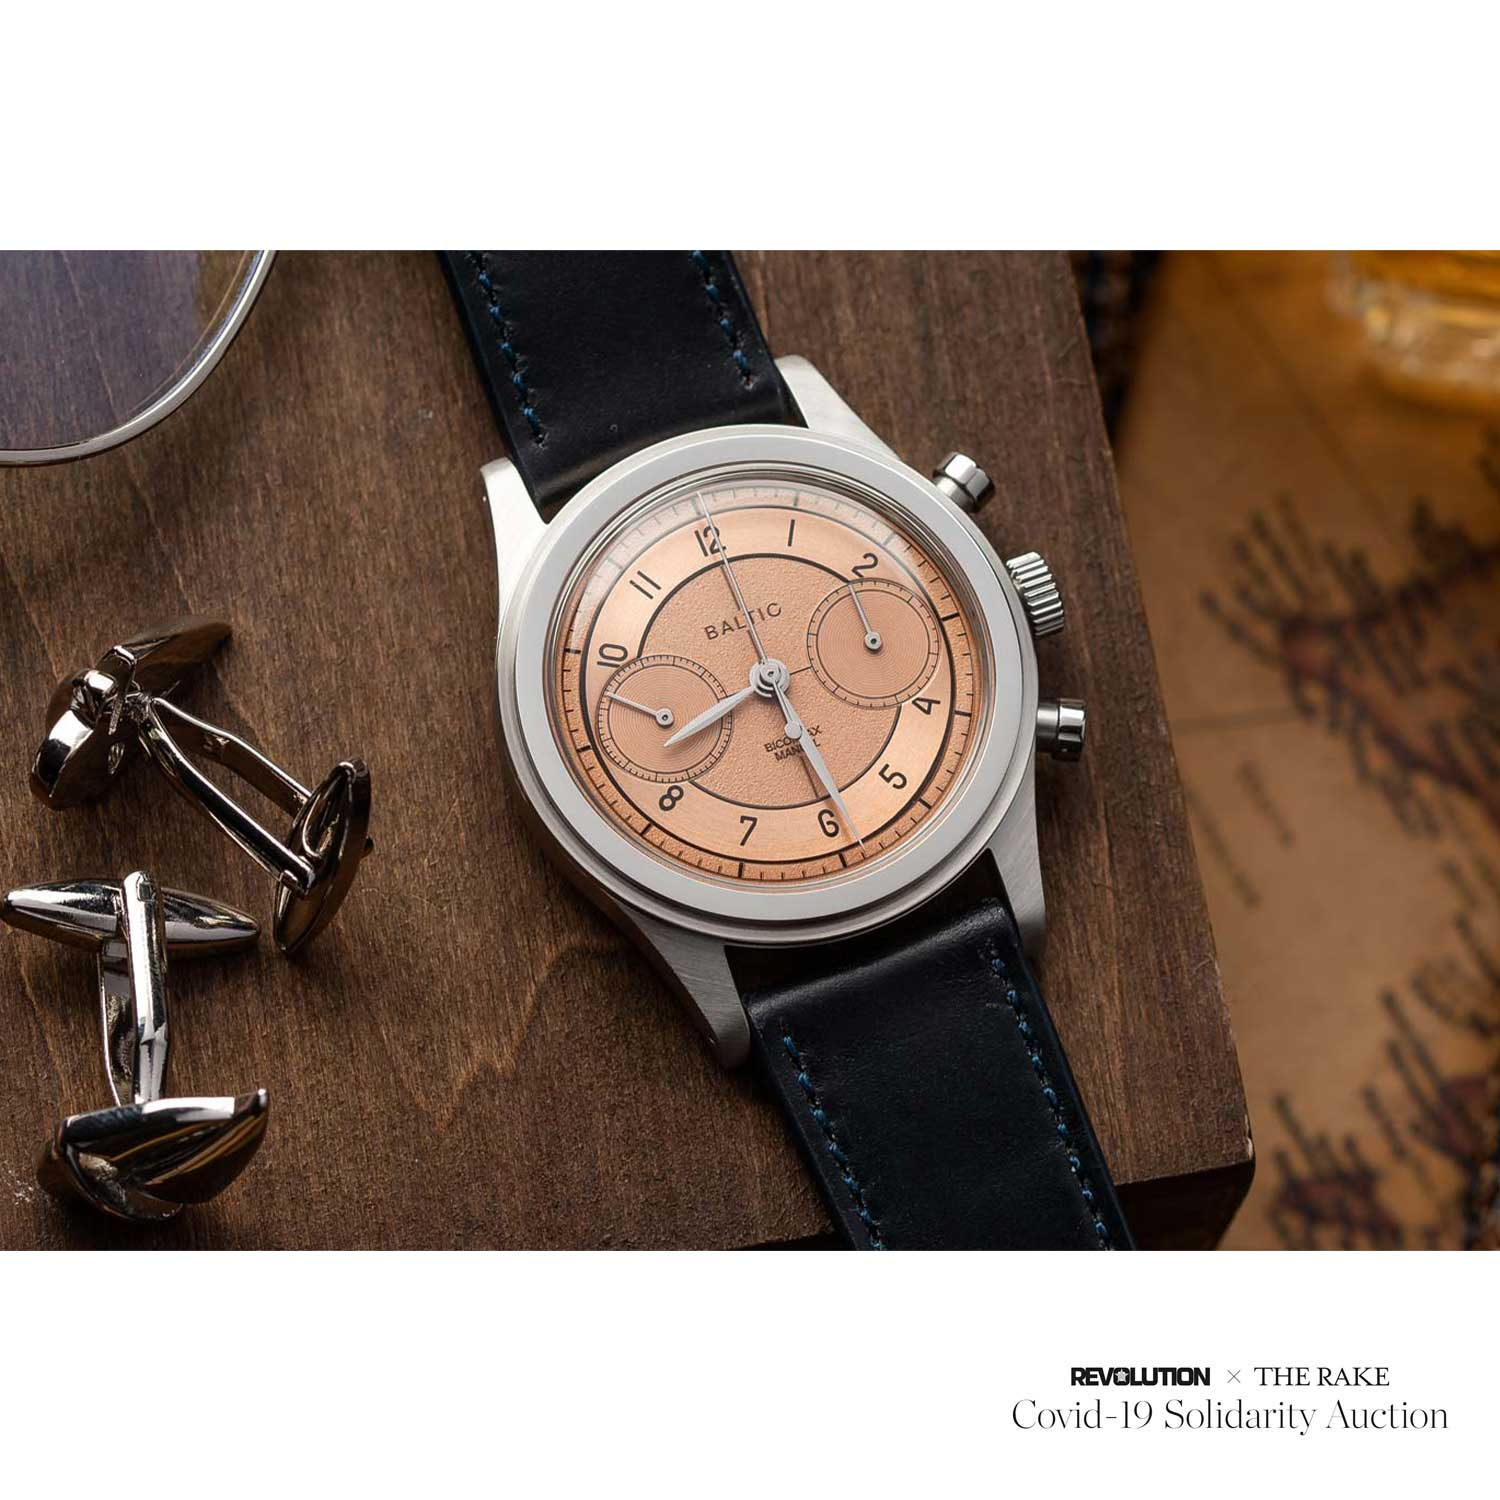 Baltic x Worn & Wound Limited-Edition Bi-Compax Chronograph donated by Richard Lee for Revolution x The Rake Covid-19 Solidarity Auction